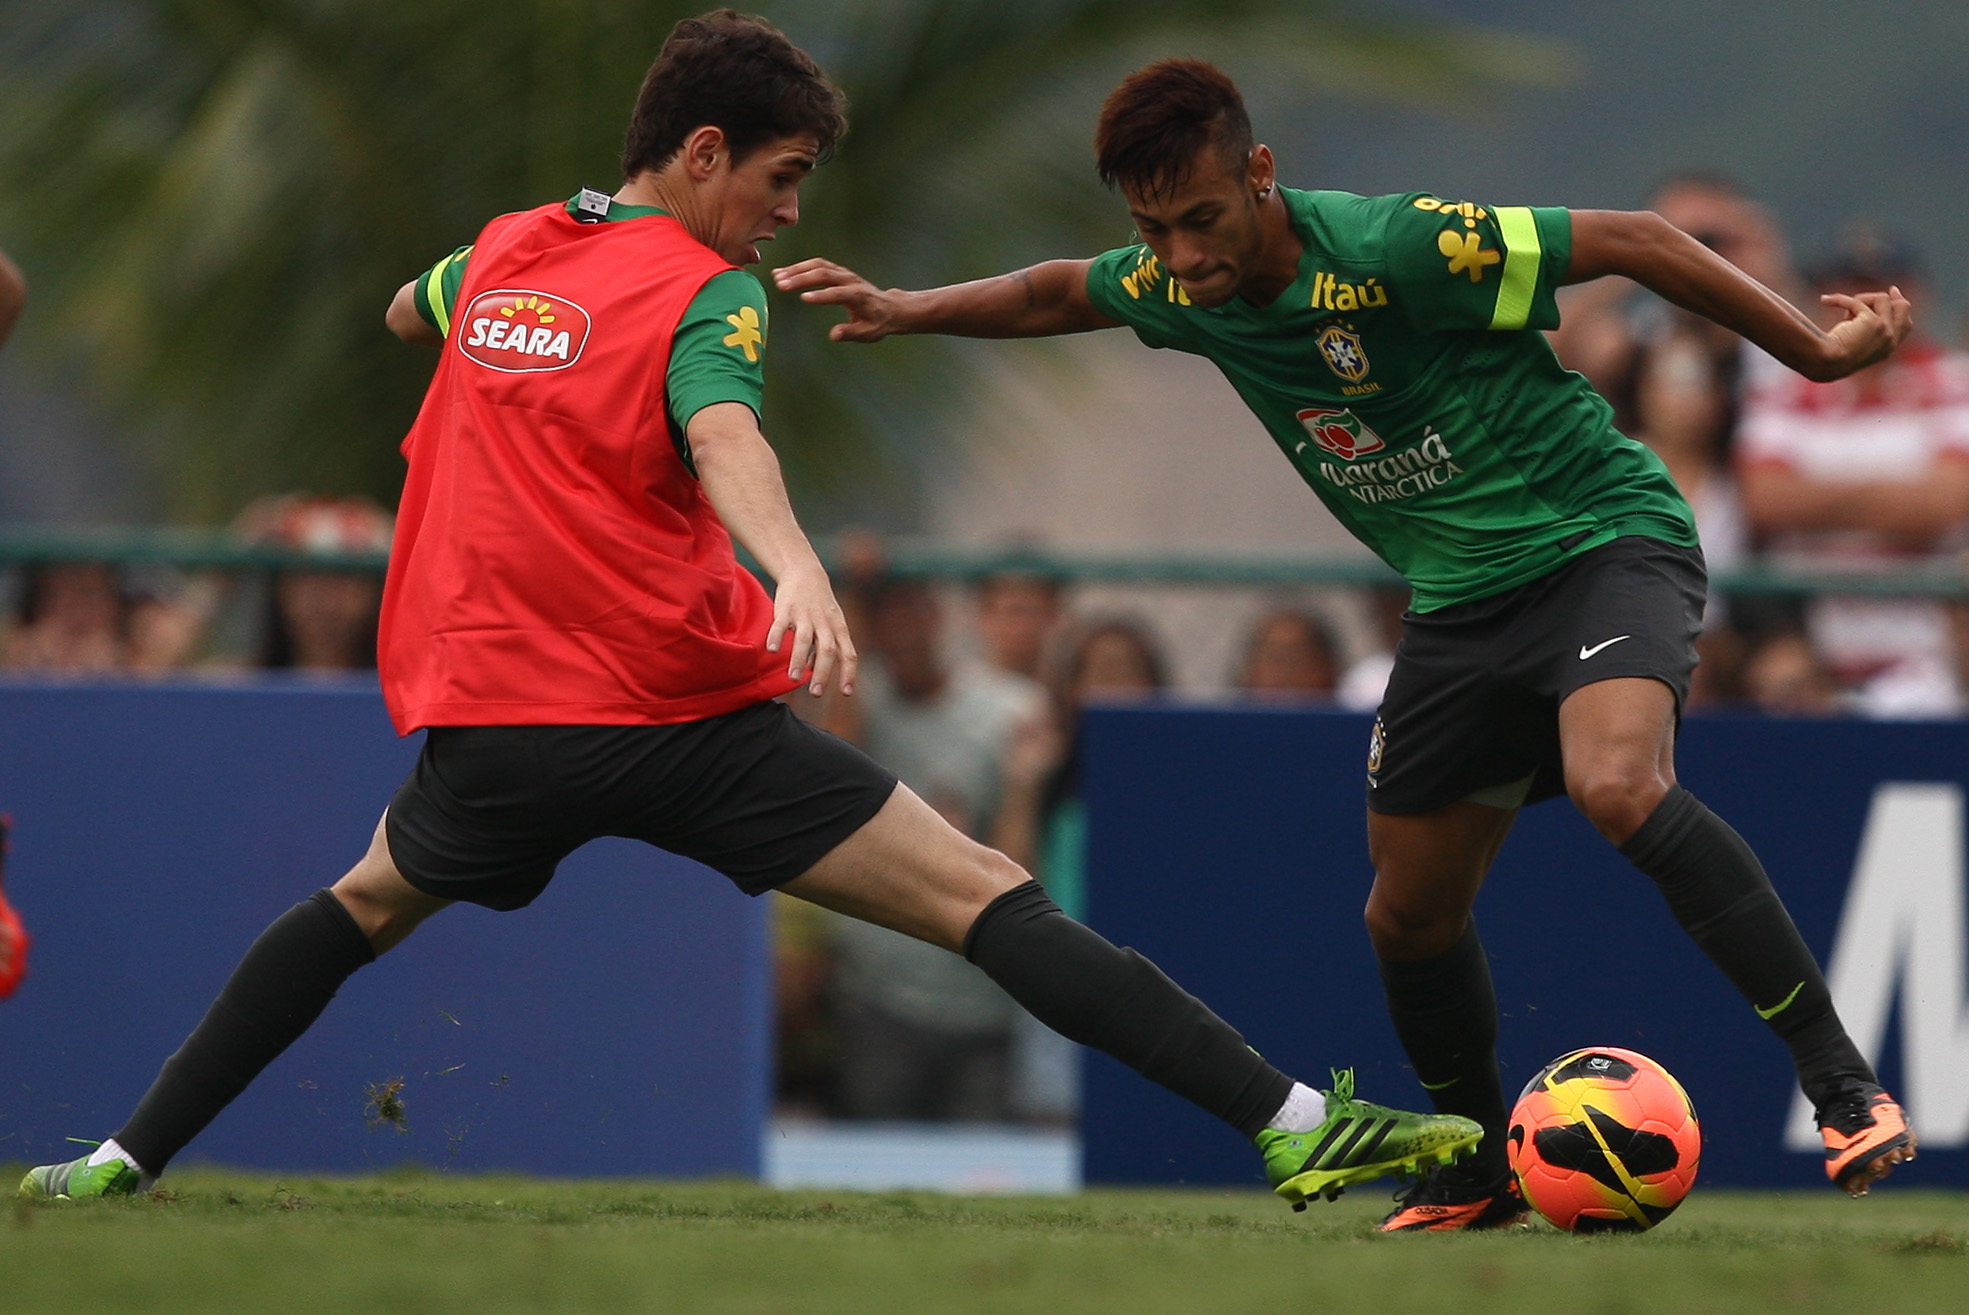 Neymar dribbles past Oscar in training (Mowa Press)